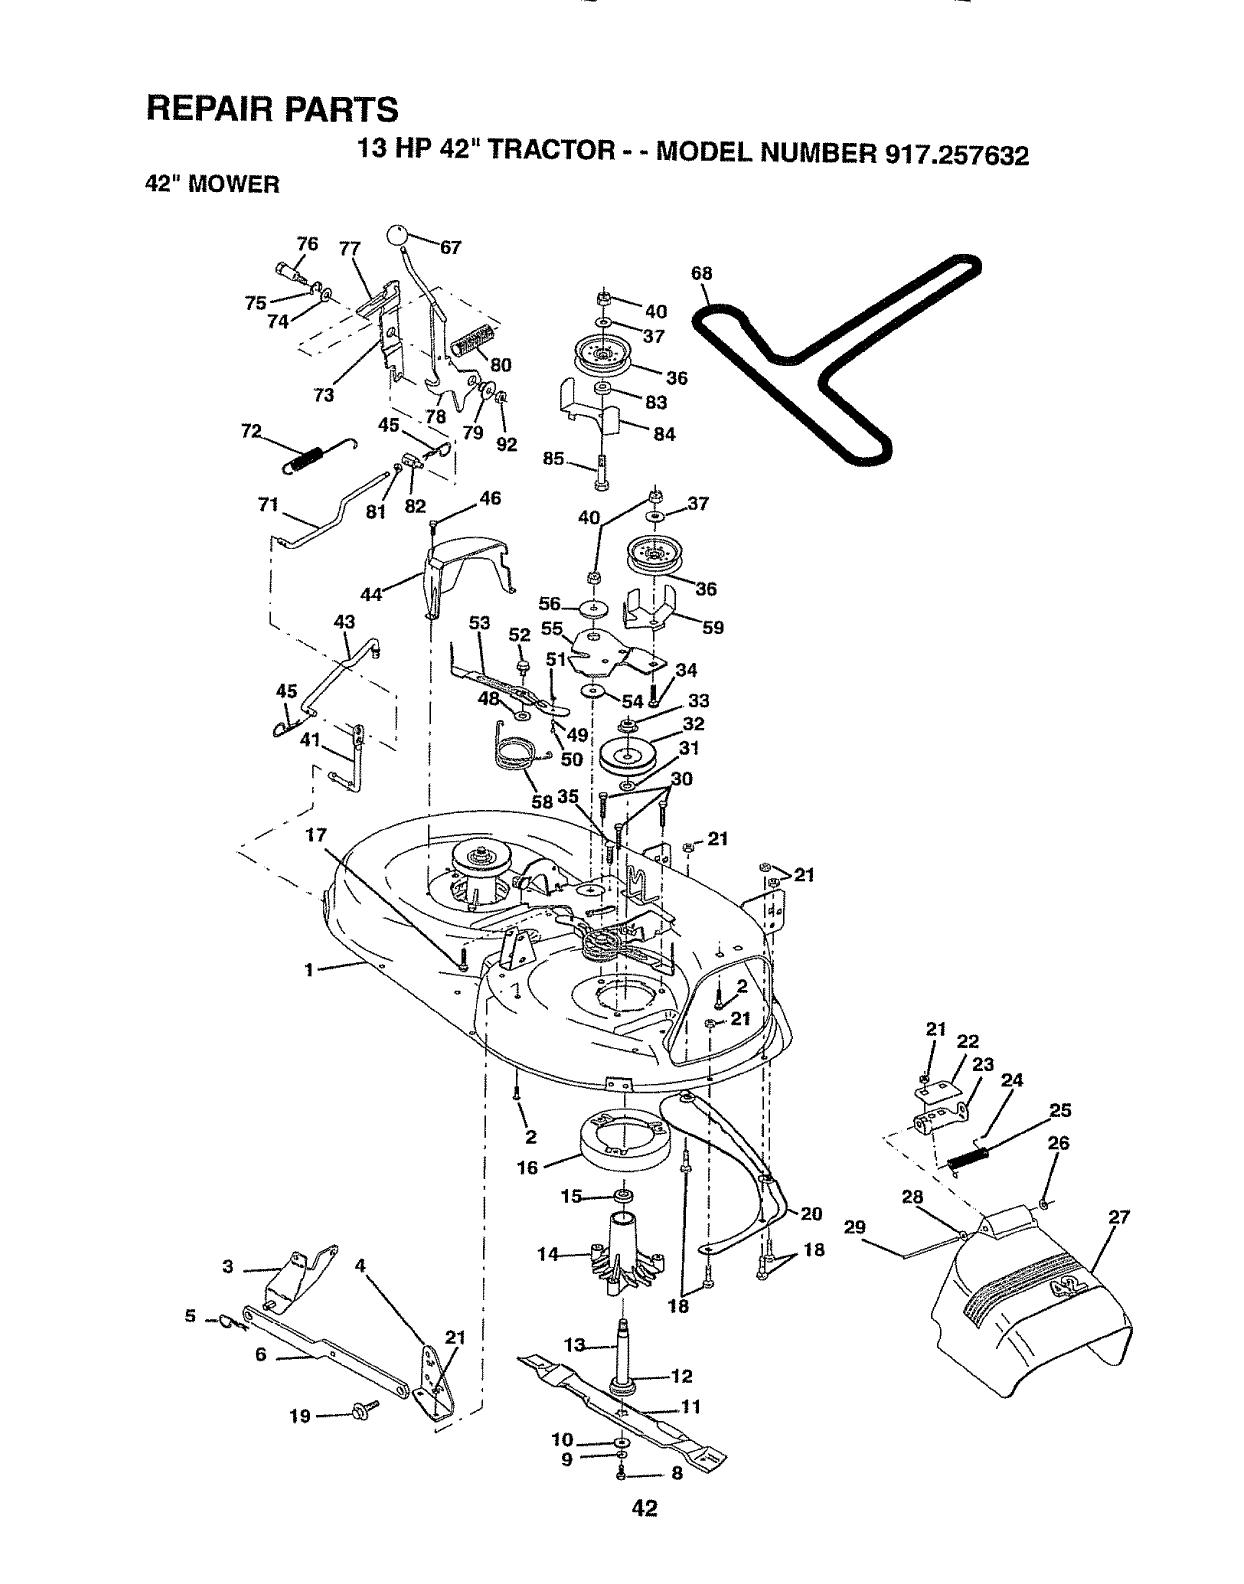 Page 42 of Sears Lawn Mower 917.257632 User Guide